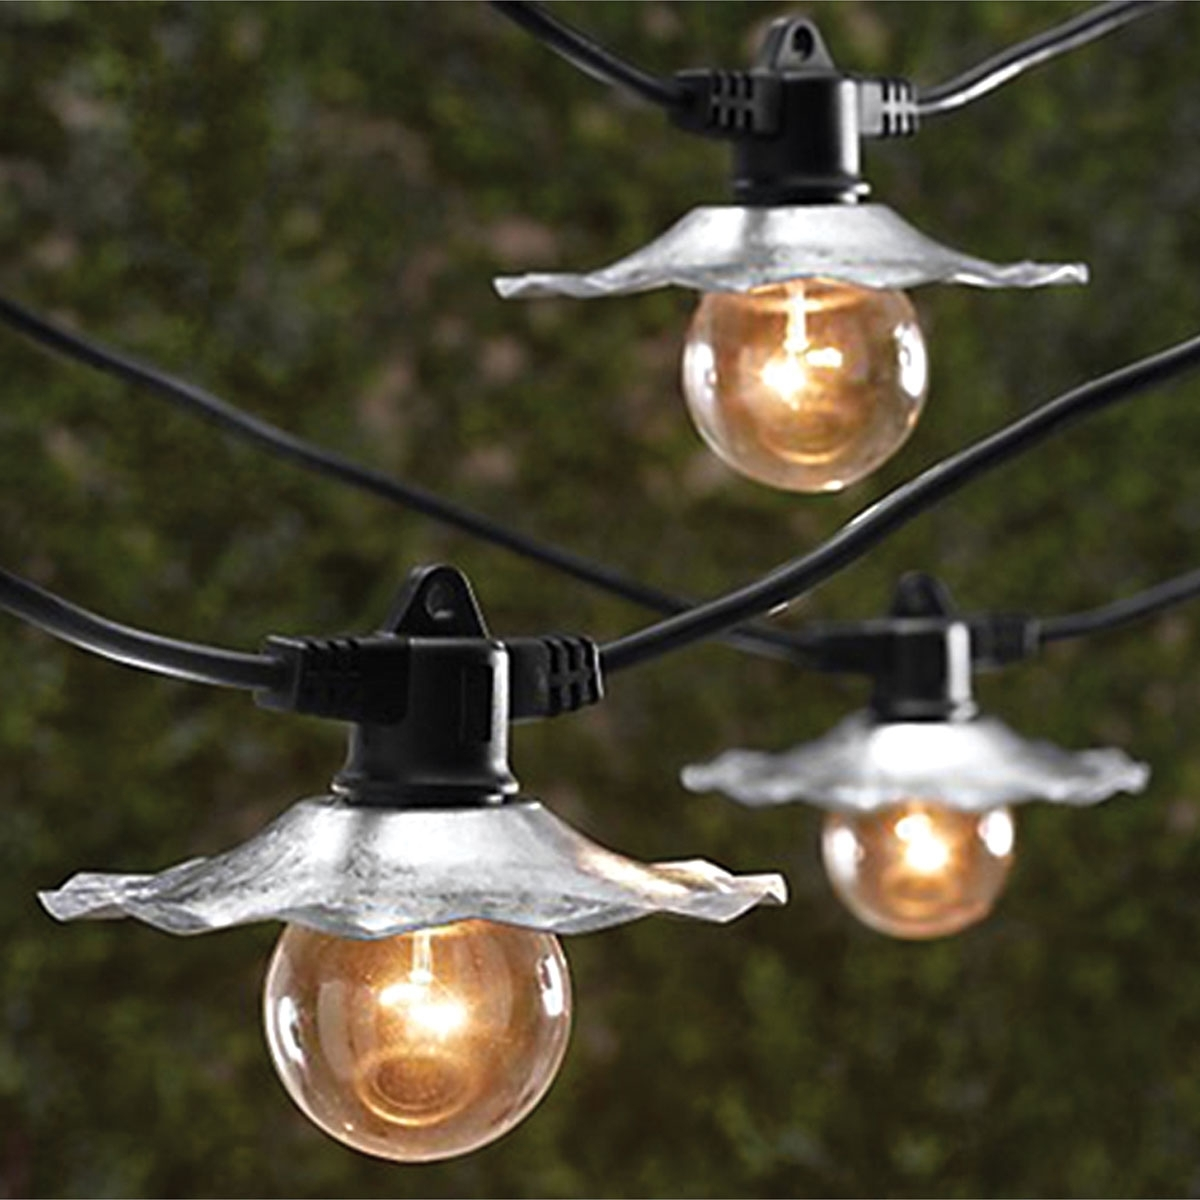 Hanging Outdoor Cafe Lights Intended For Preferred String Lights With Galvanized Silver Shades – 35 Ft (View 12 of 20)